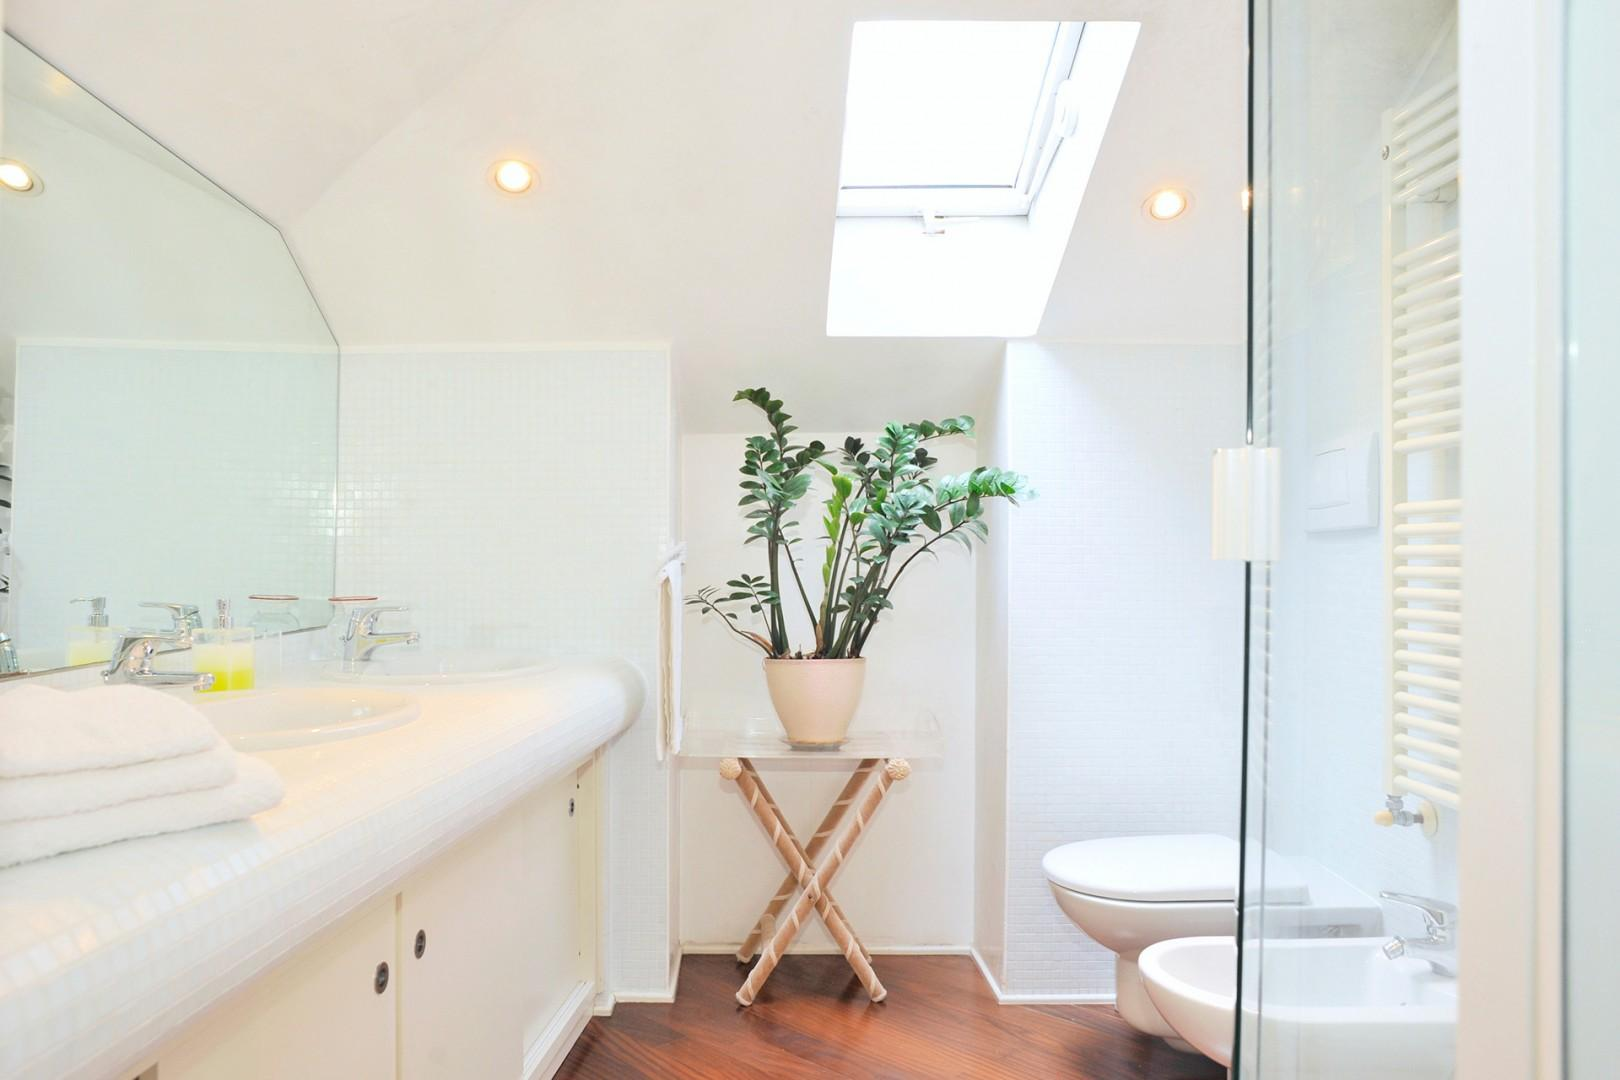 The compact bathroom with a double sink and a skylight that brightens.